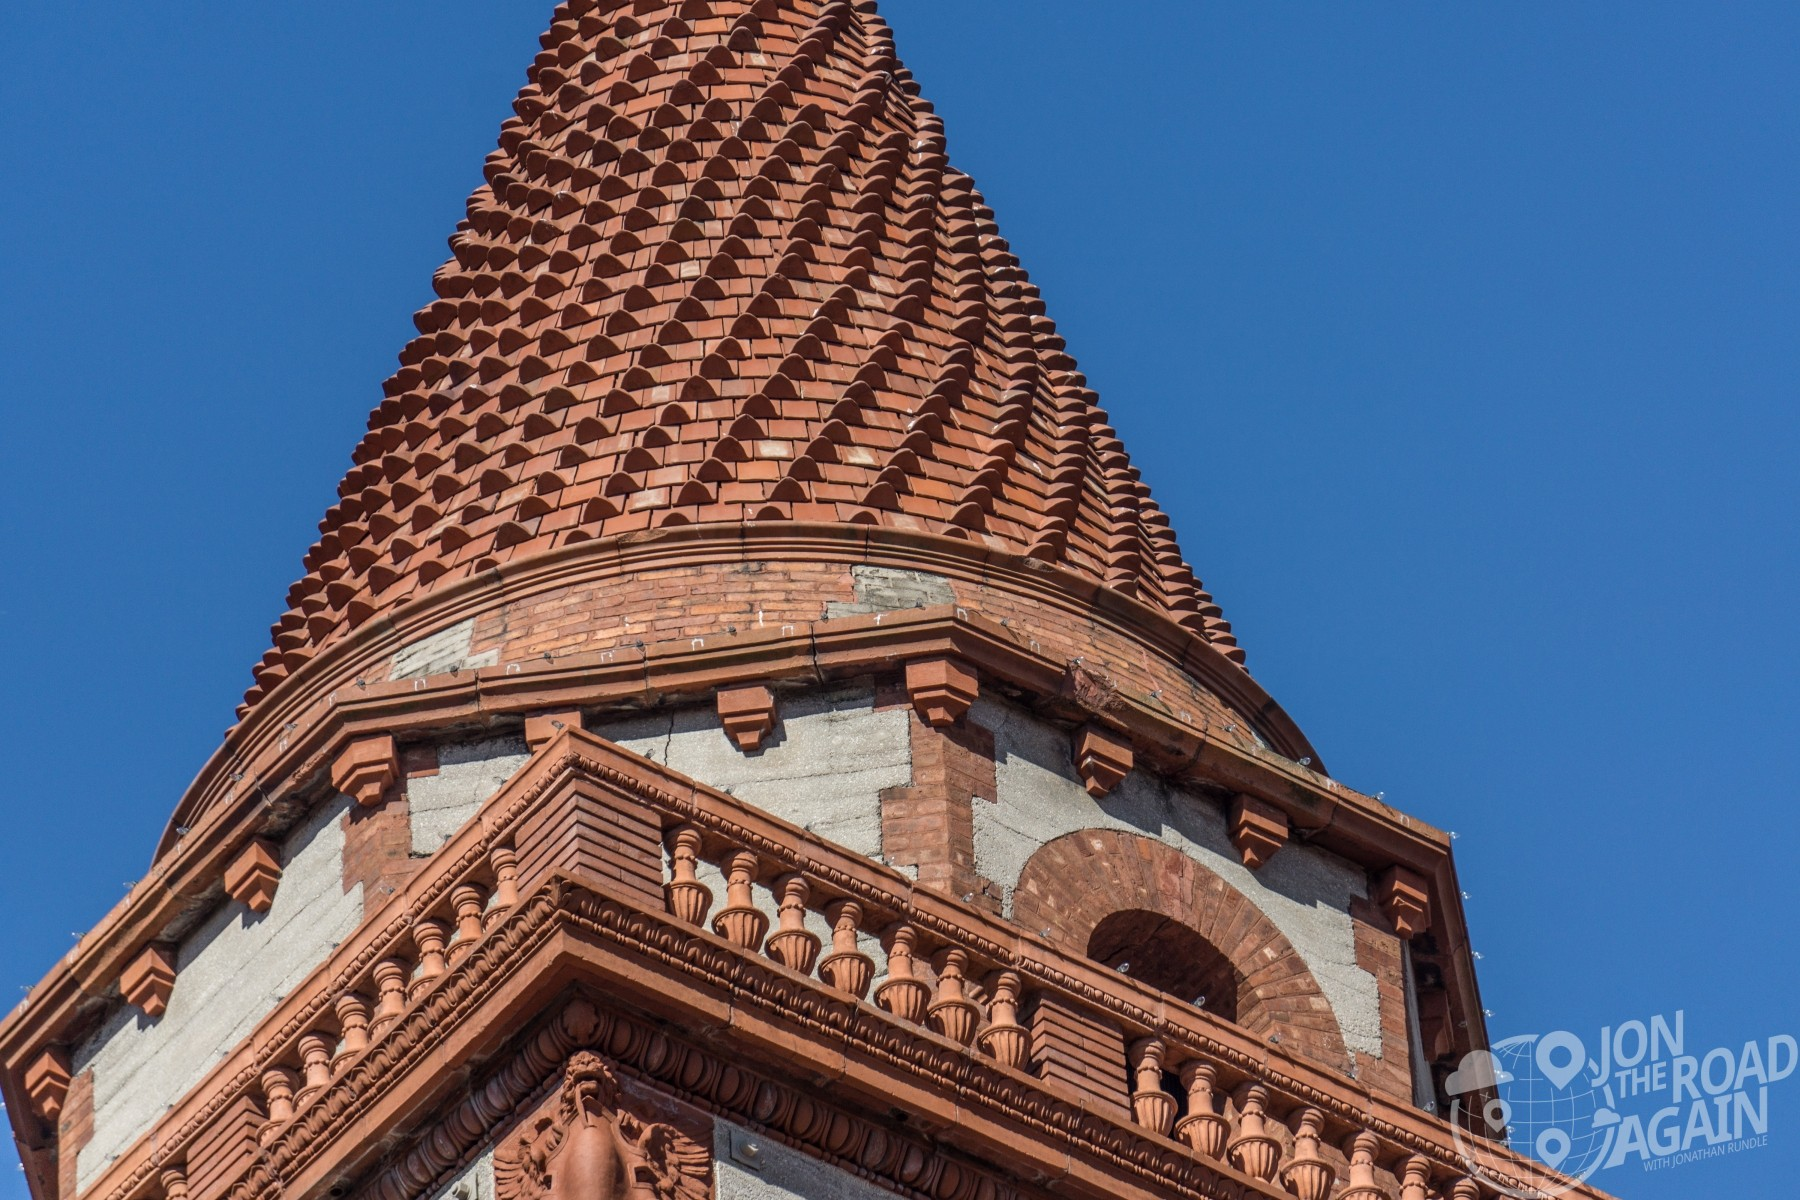 Ponce de Leon hotel / Flagler College tower detail